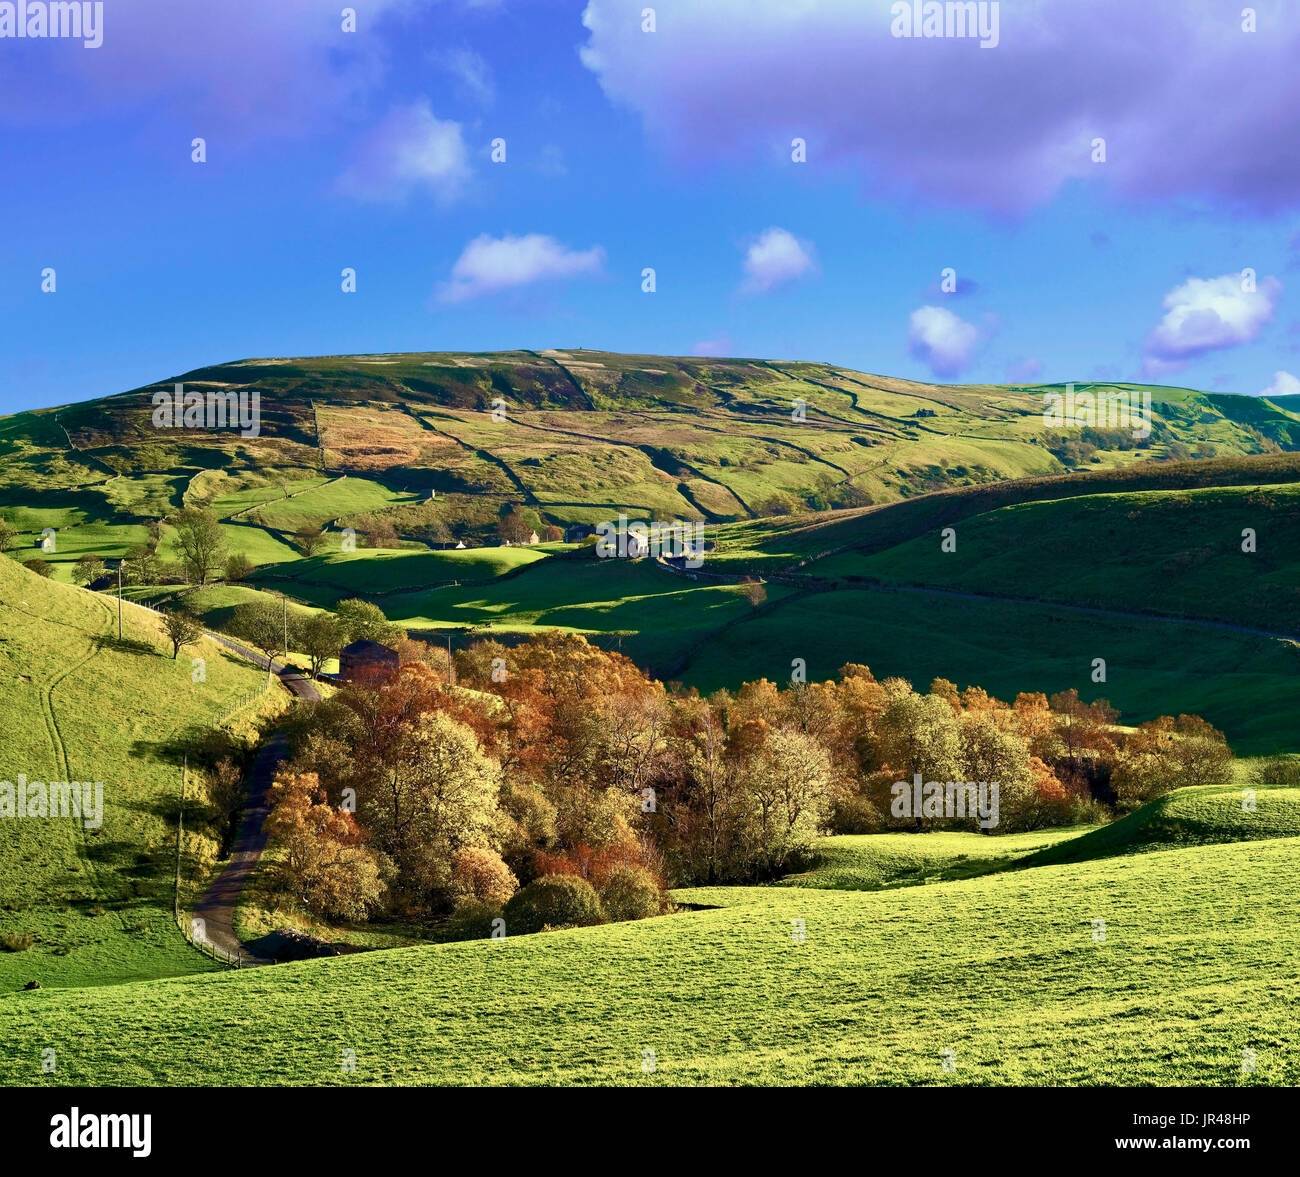 An autumn view of the Swaledale landscape in Yorkshire, England - Stock Image